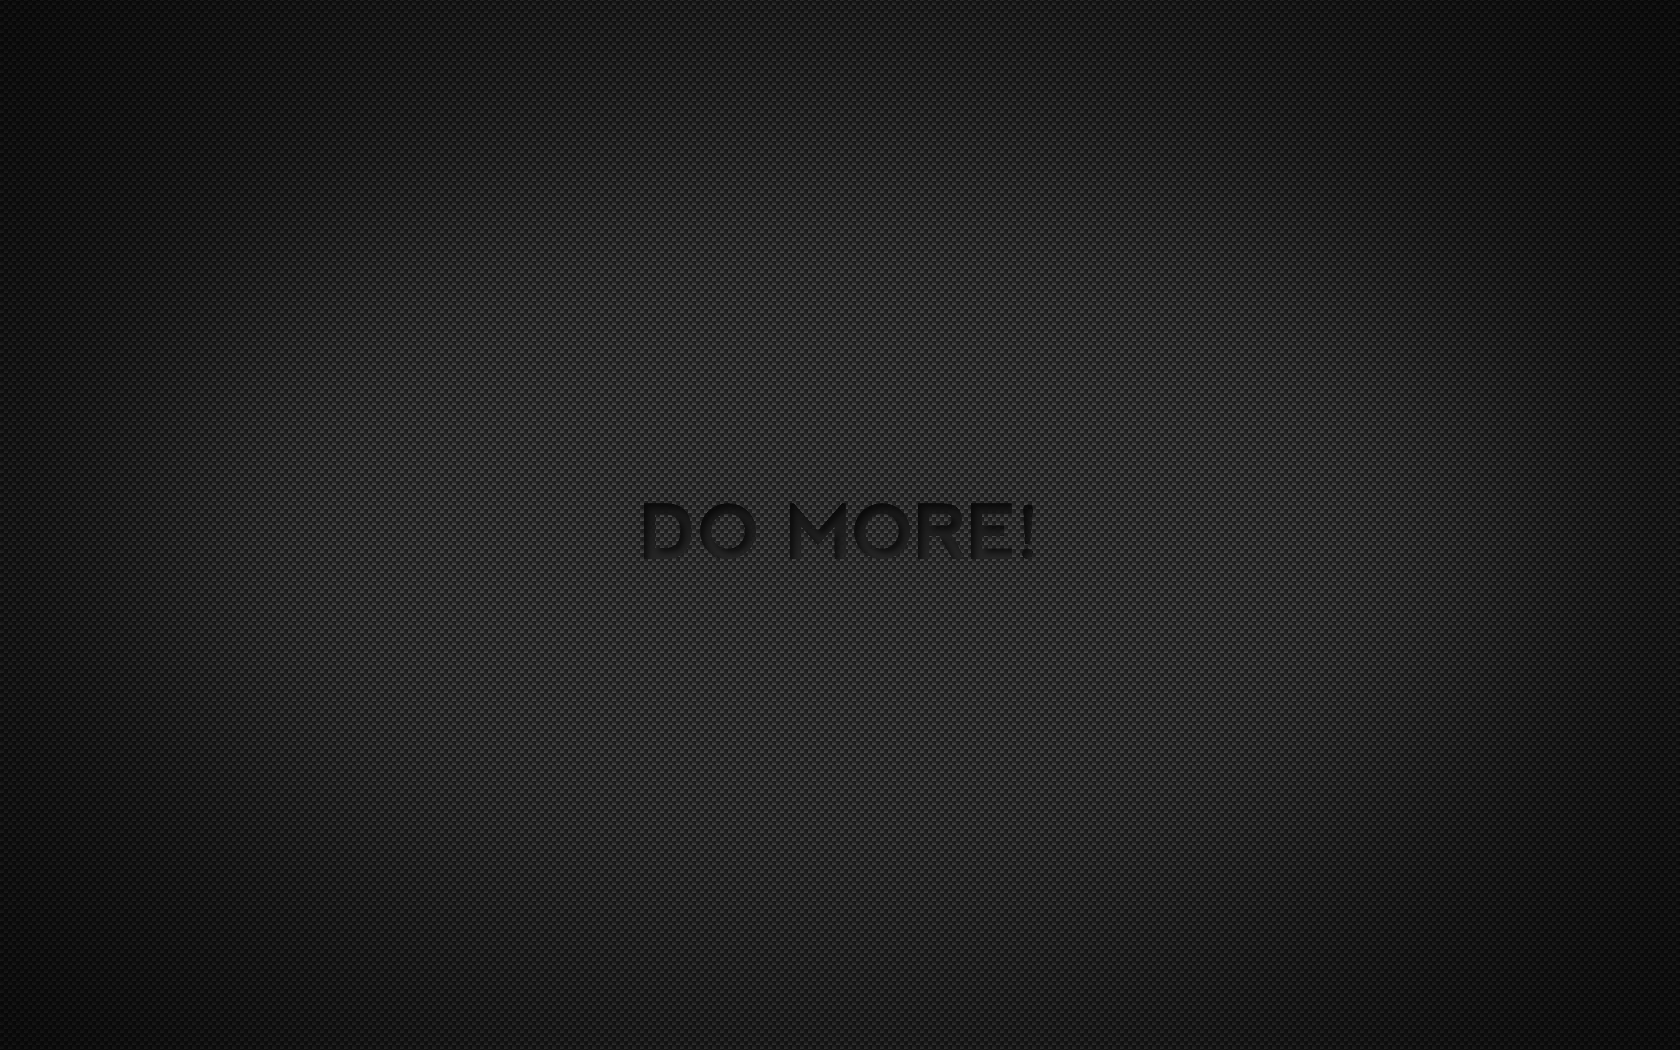 Carbon Wallpaper - Do More by buchlos